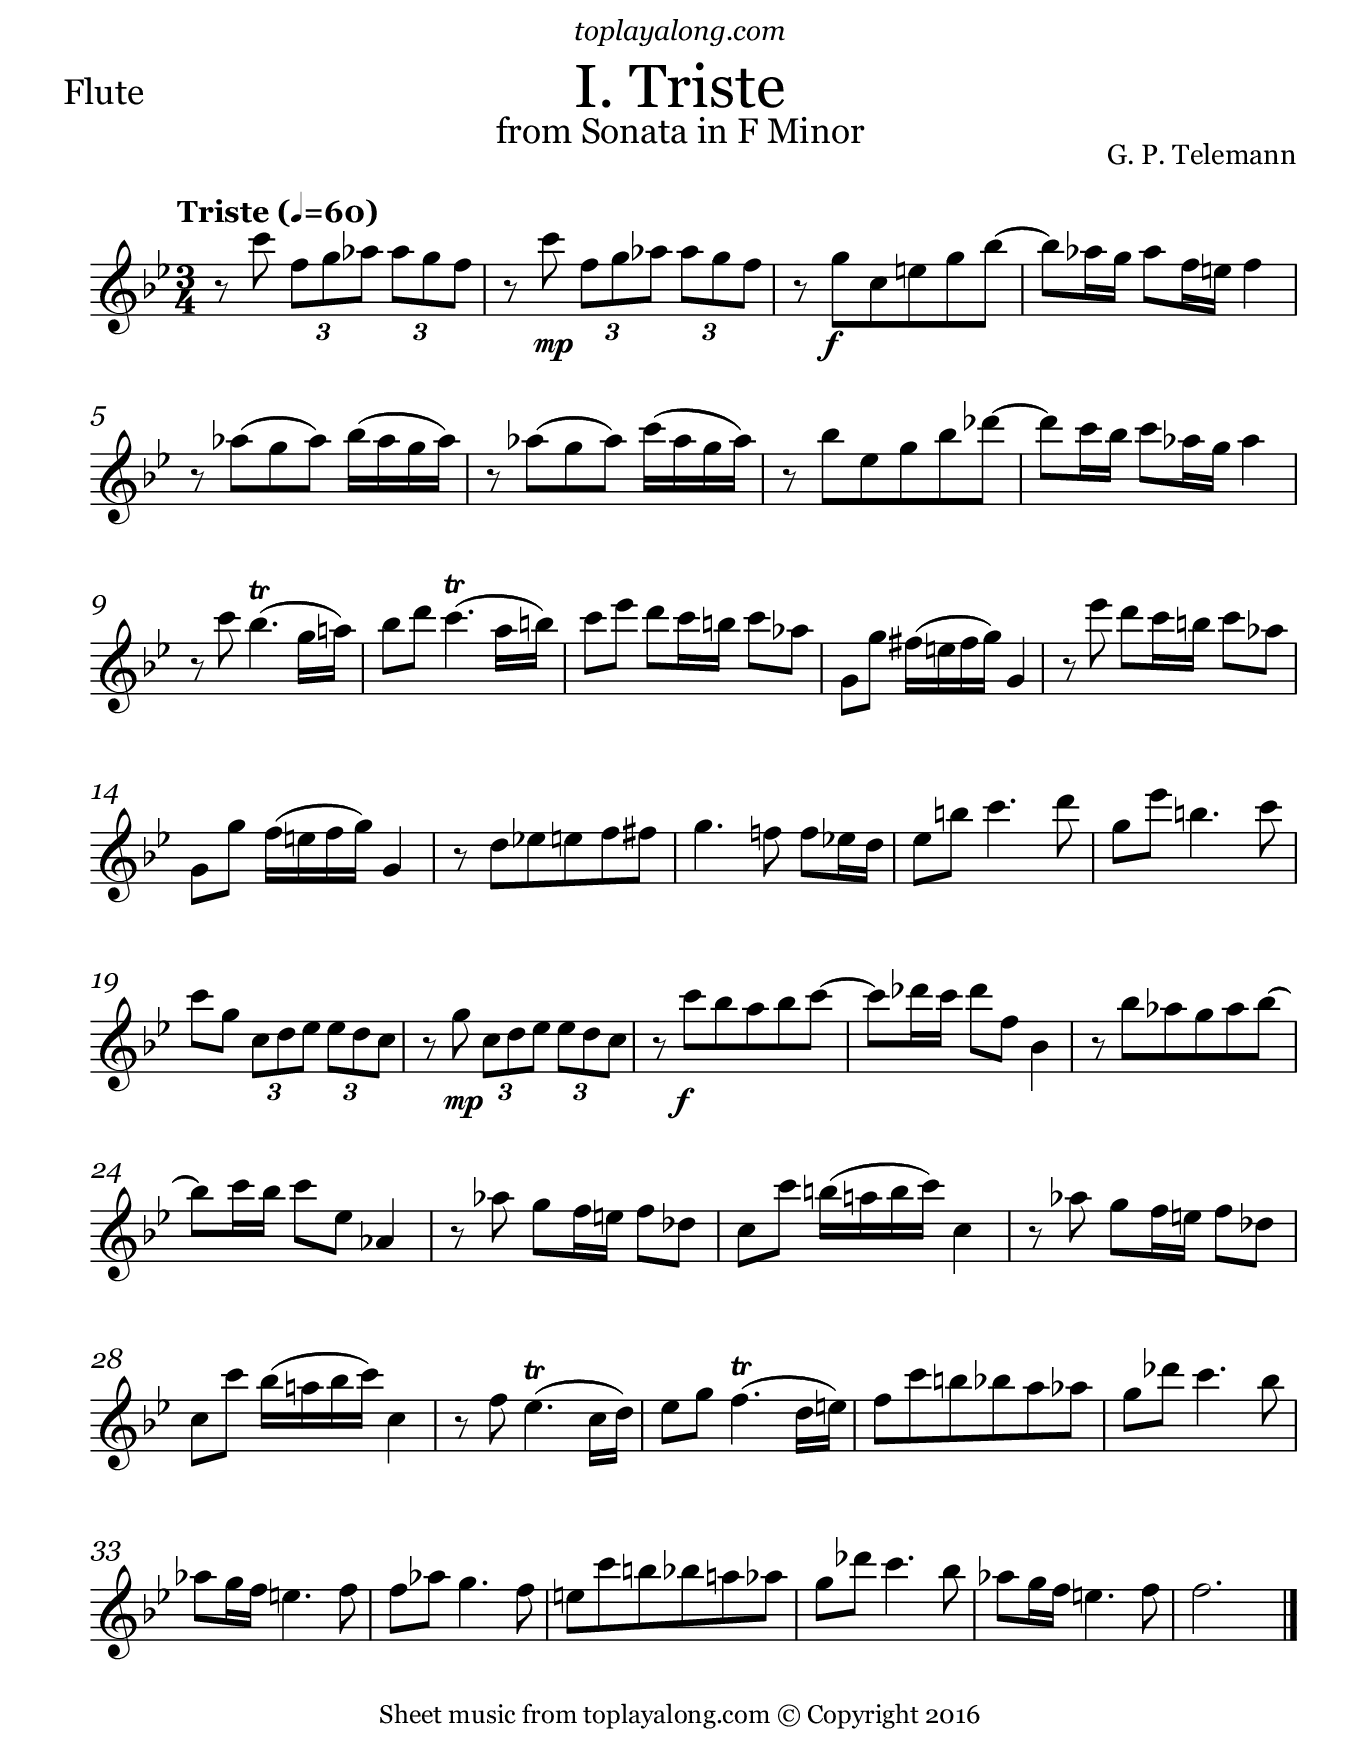 Sonata in F minor (I. Triste) by Telemann. Sheet music for Flute, page 1.